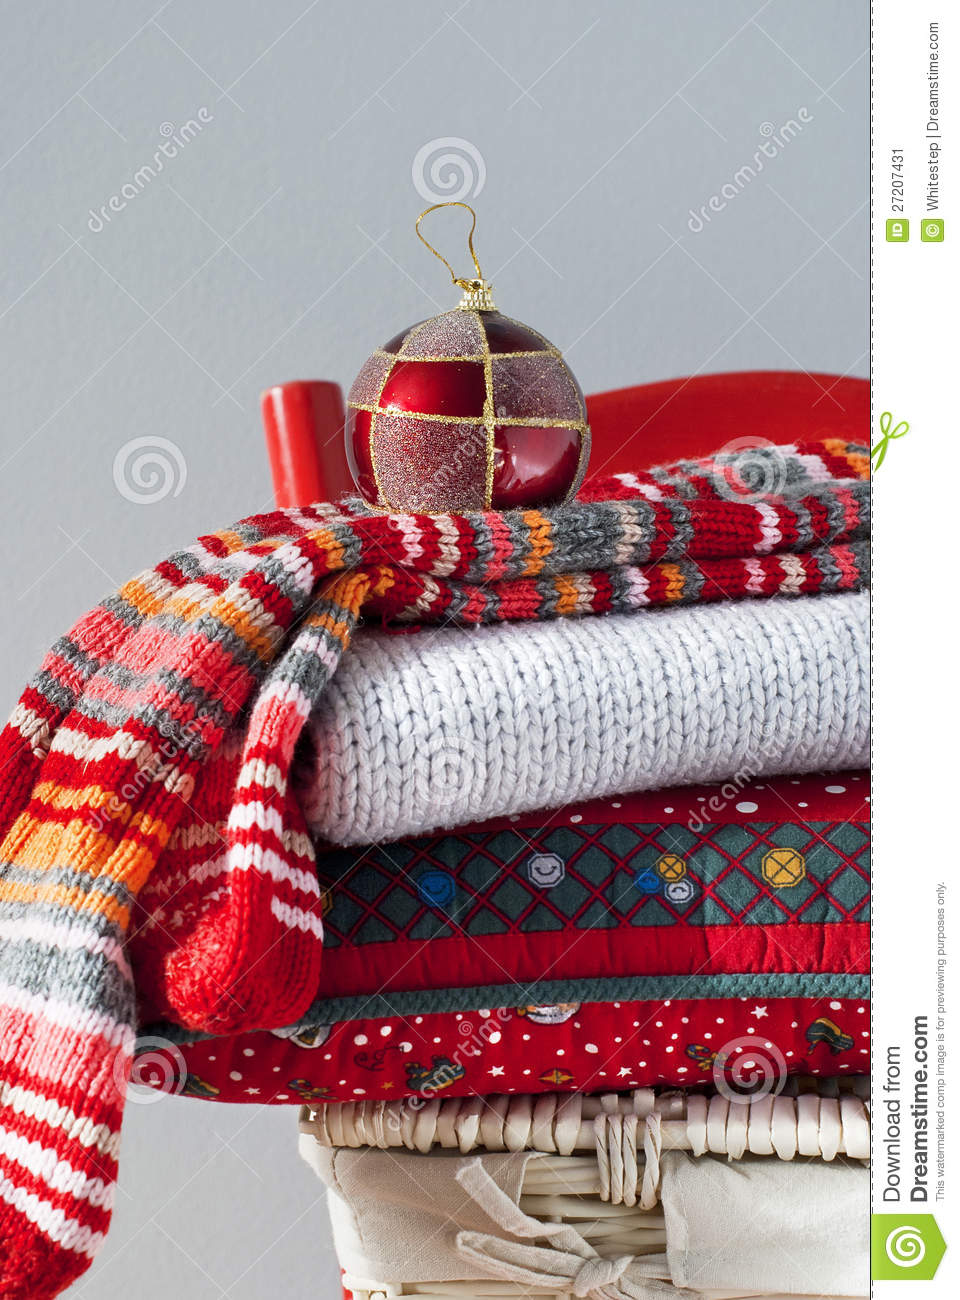 Christmas country gifts stock image image 27207431 Country christmas gifts to make